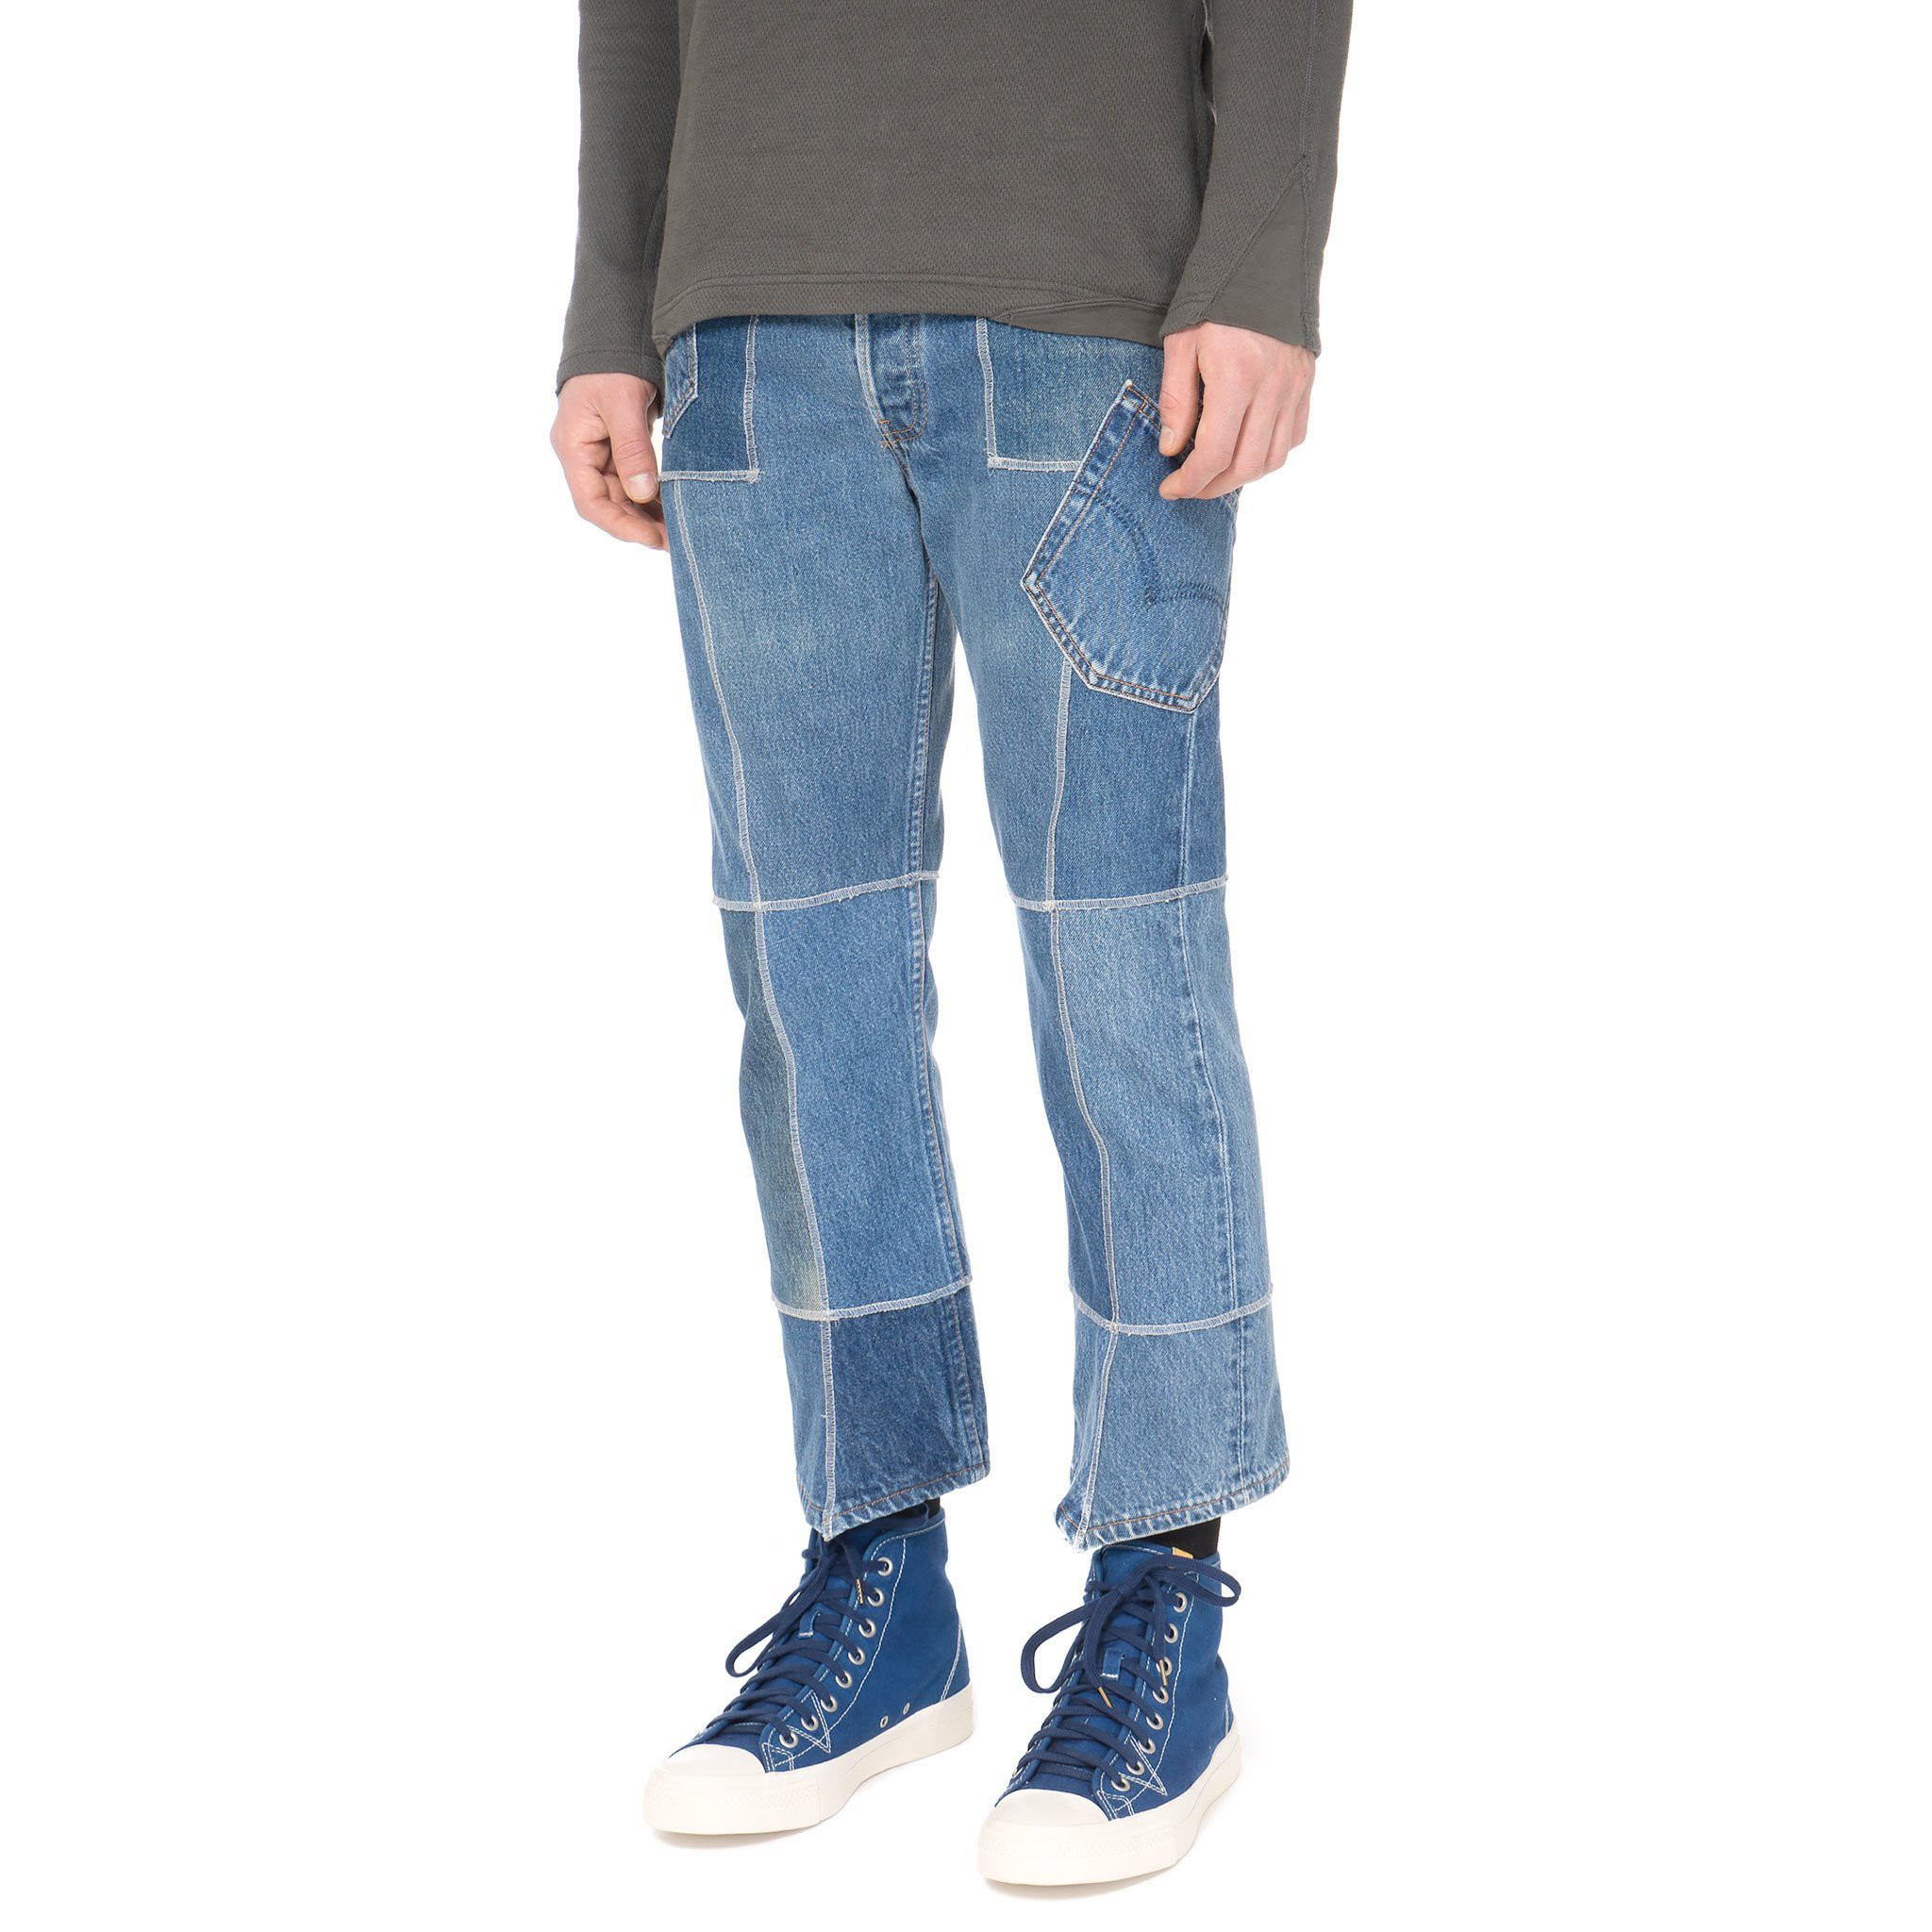 80deafcd6af9 Top 7 Japanese Denim Brands And Where To Find Them